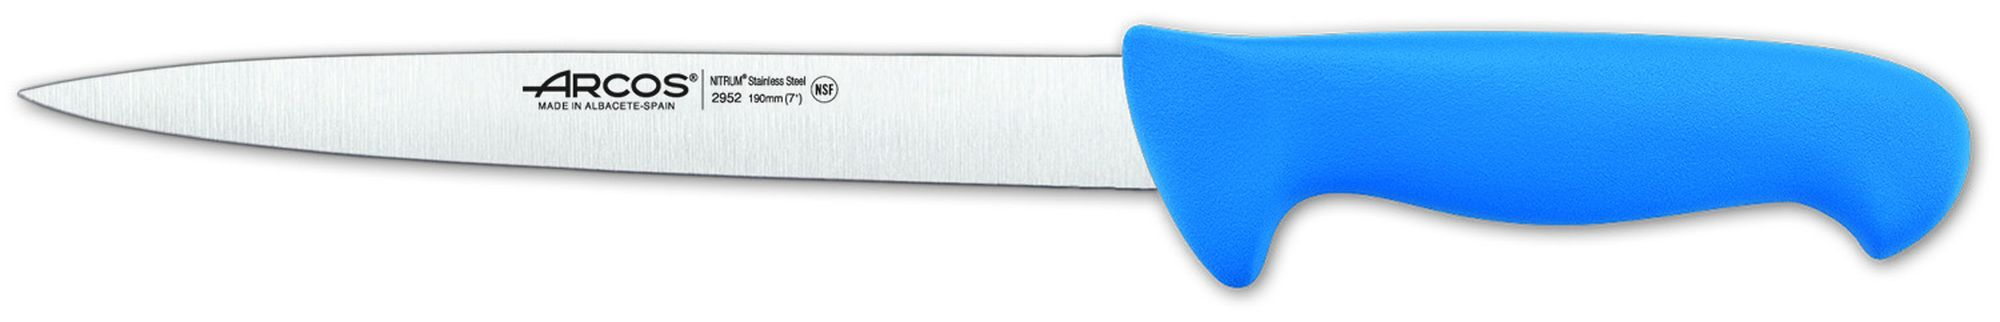 Cuchillo Fileteador Semiflexible Arcos ref.: 295223